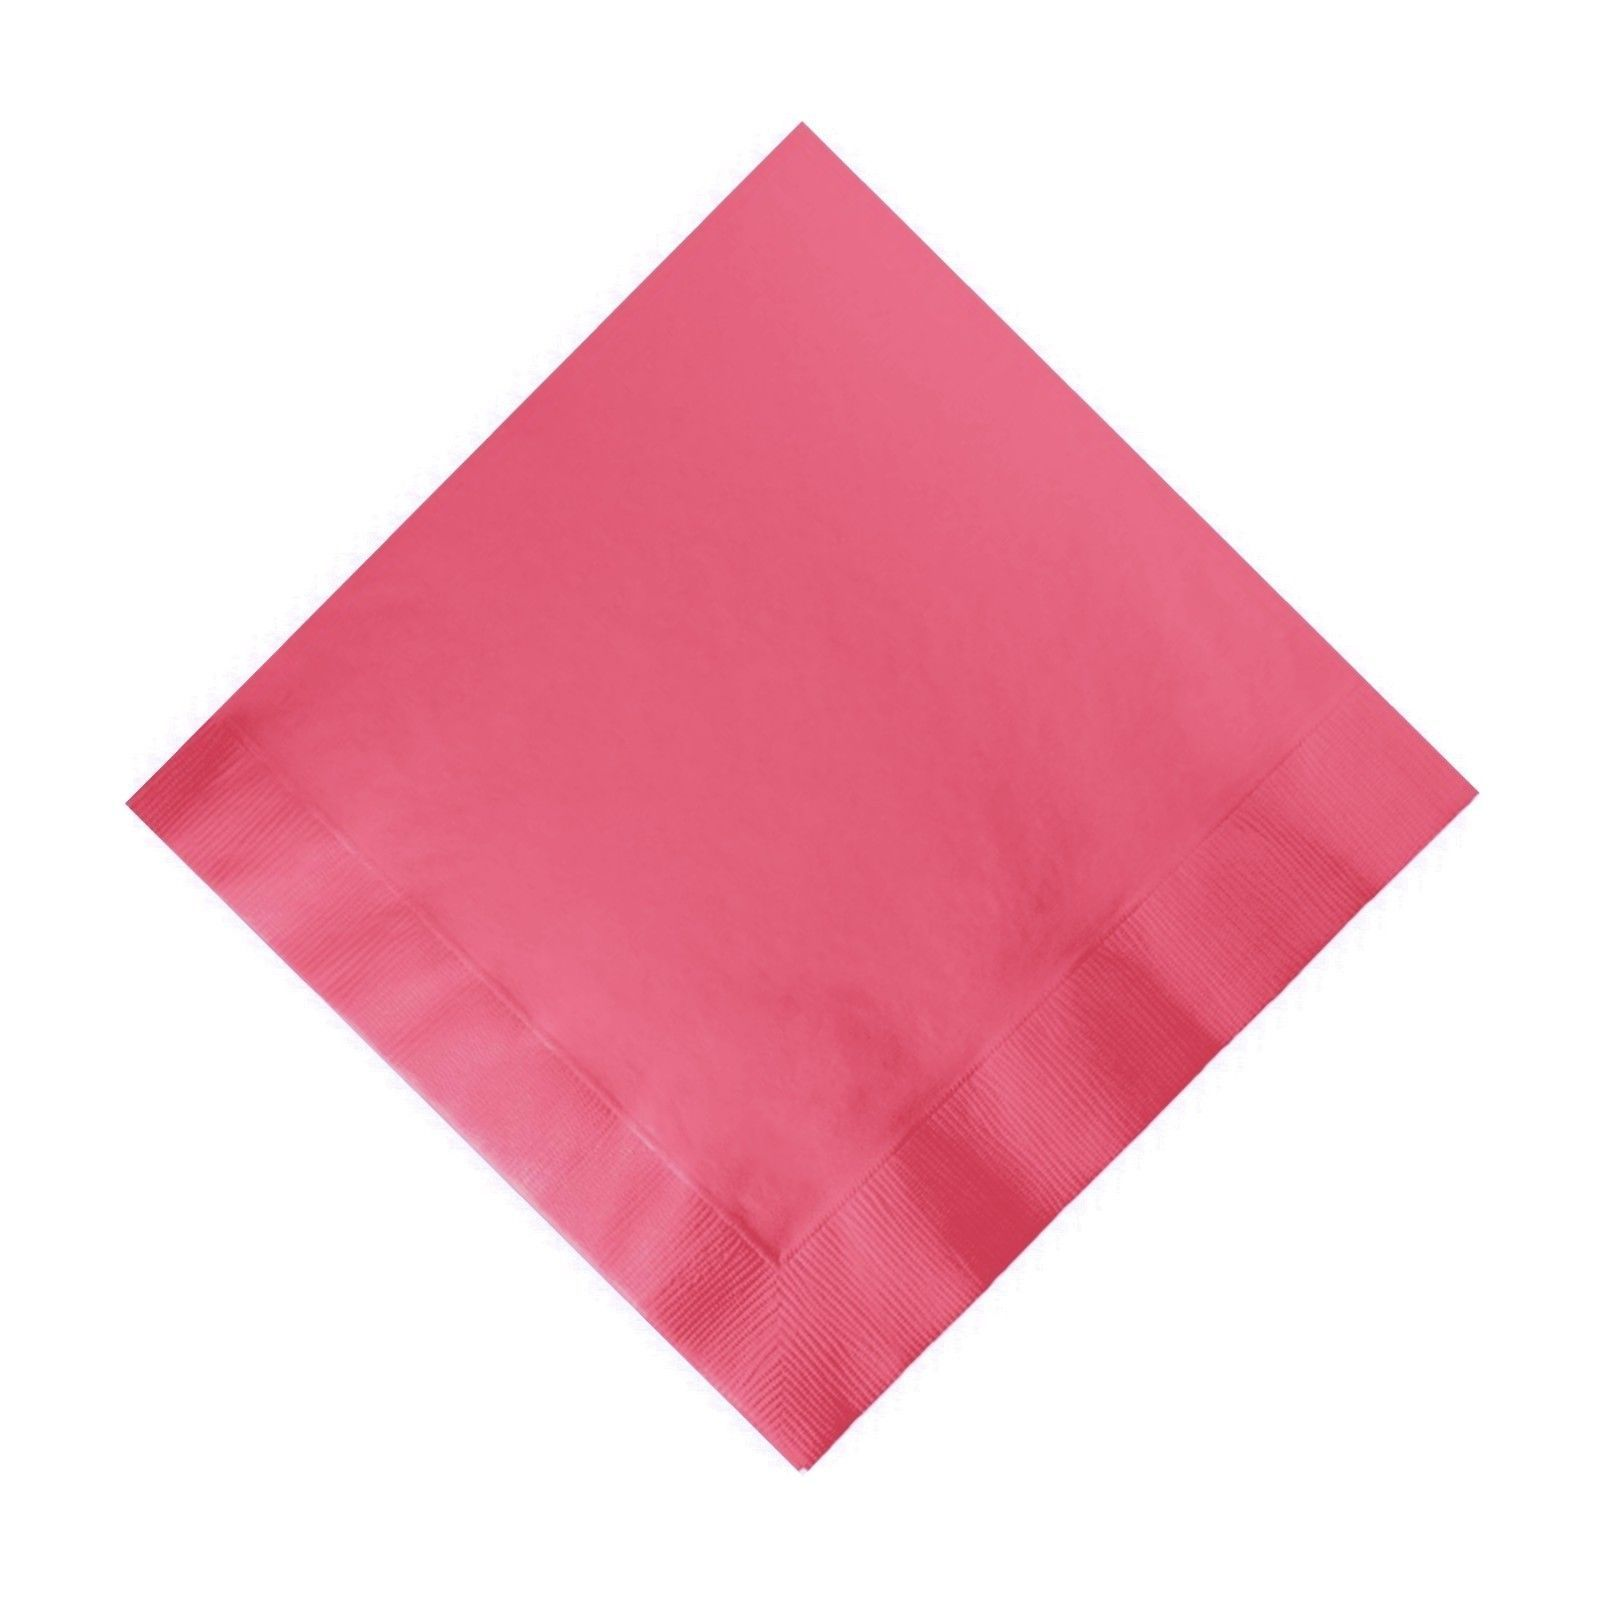 colored paper napkins Color printing paper colored paper filler paper novelty paper 400 napkins per pack white paper napkins stronger than the next leading napkin (when wet) 929.